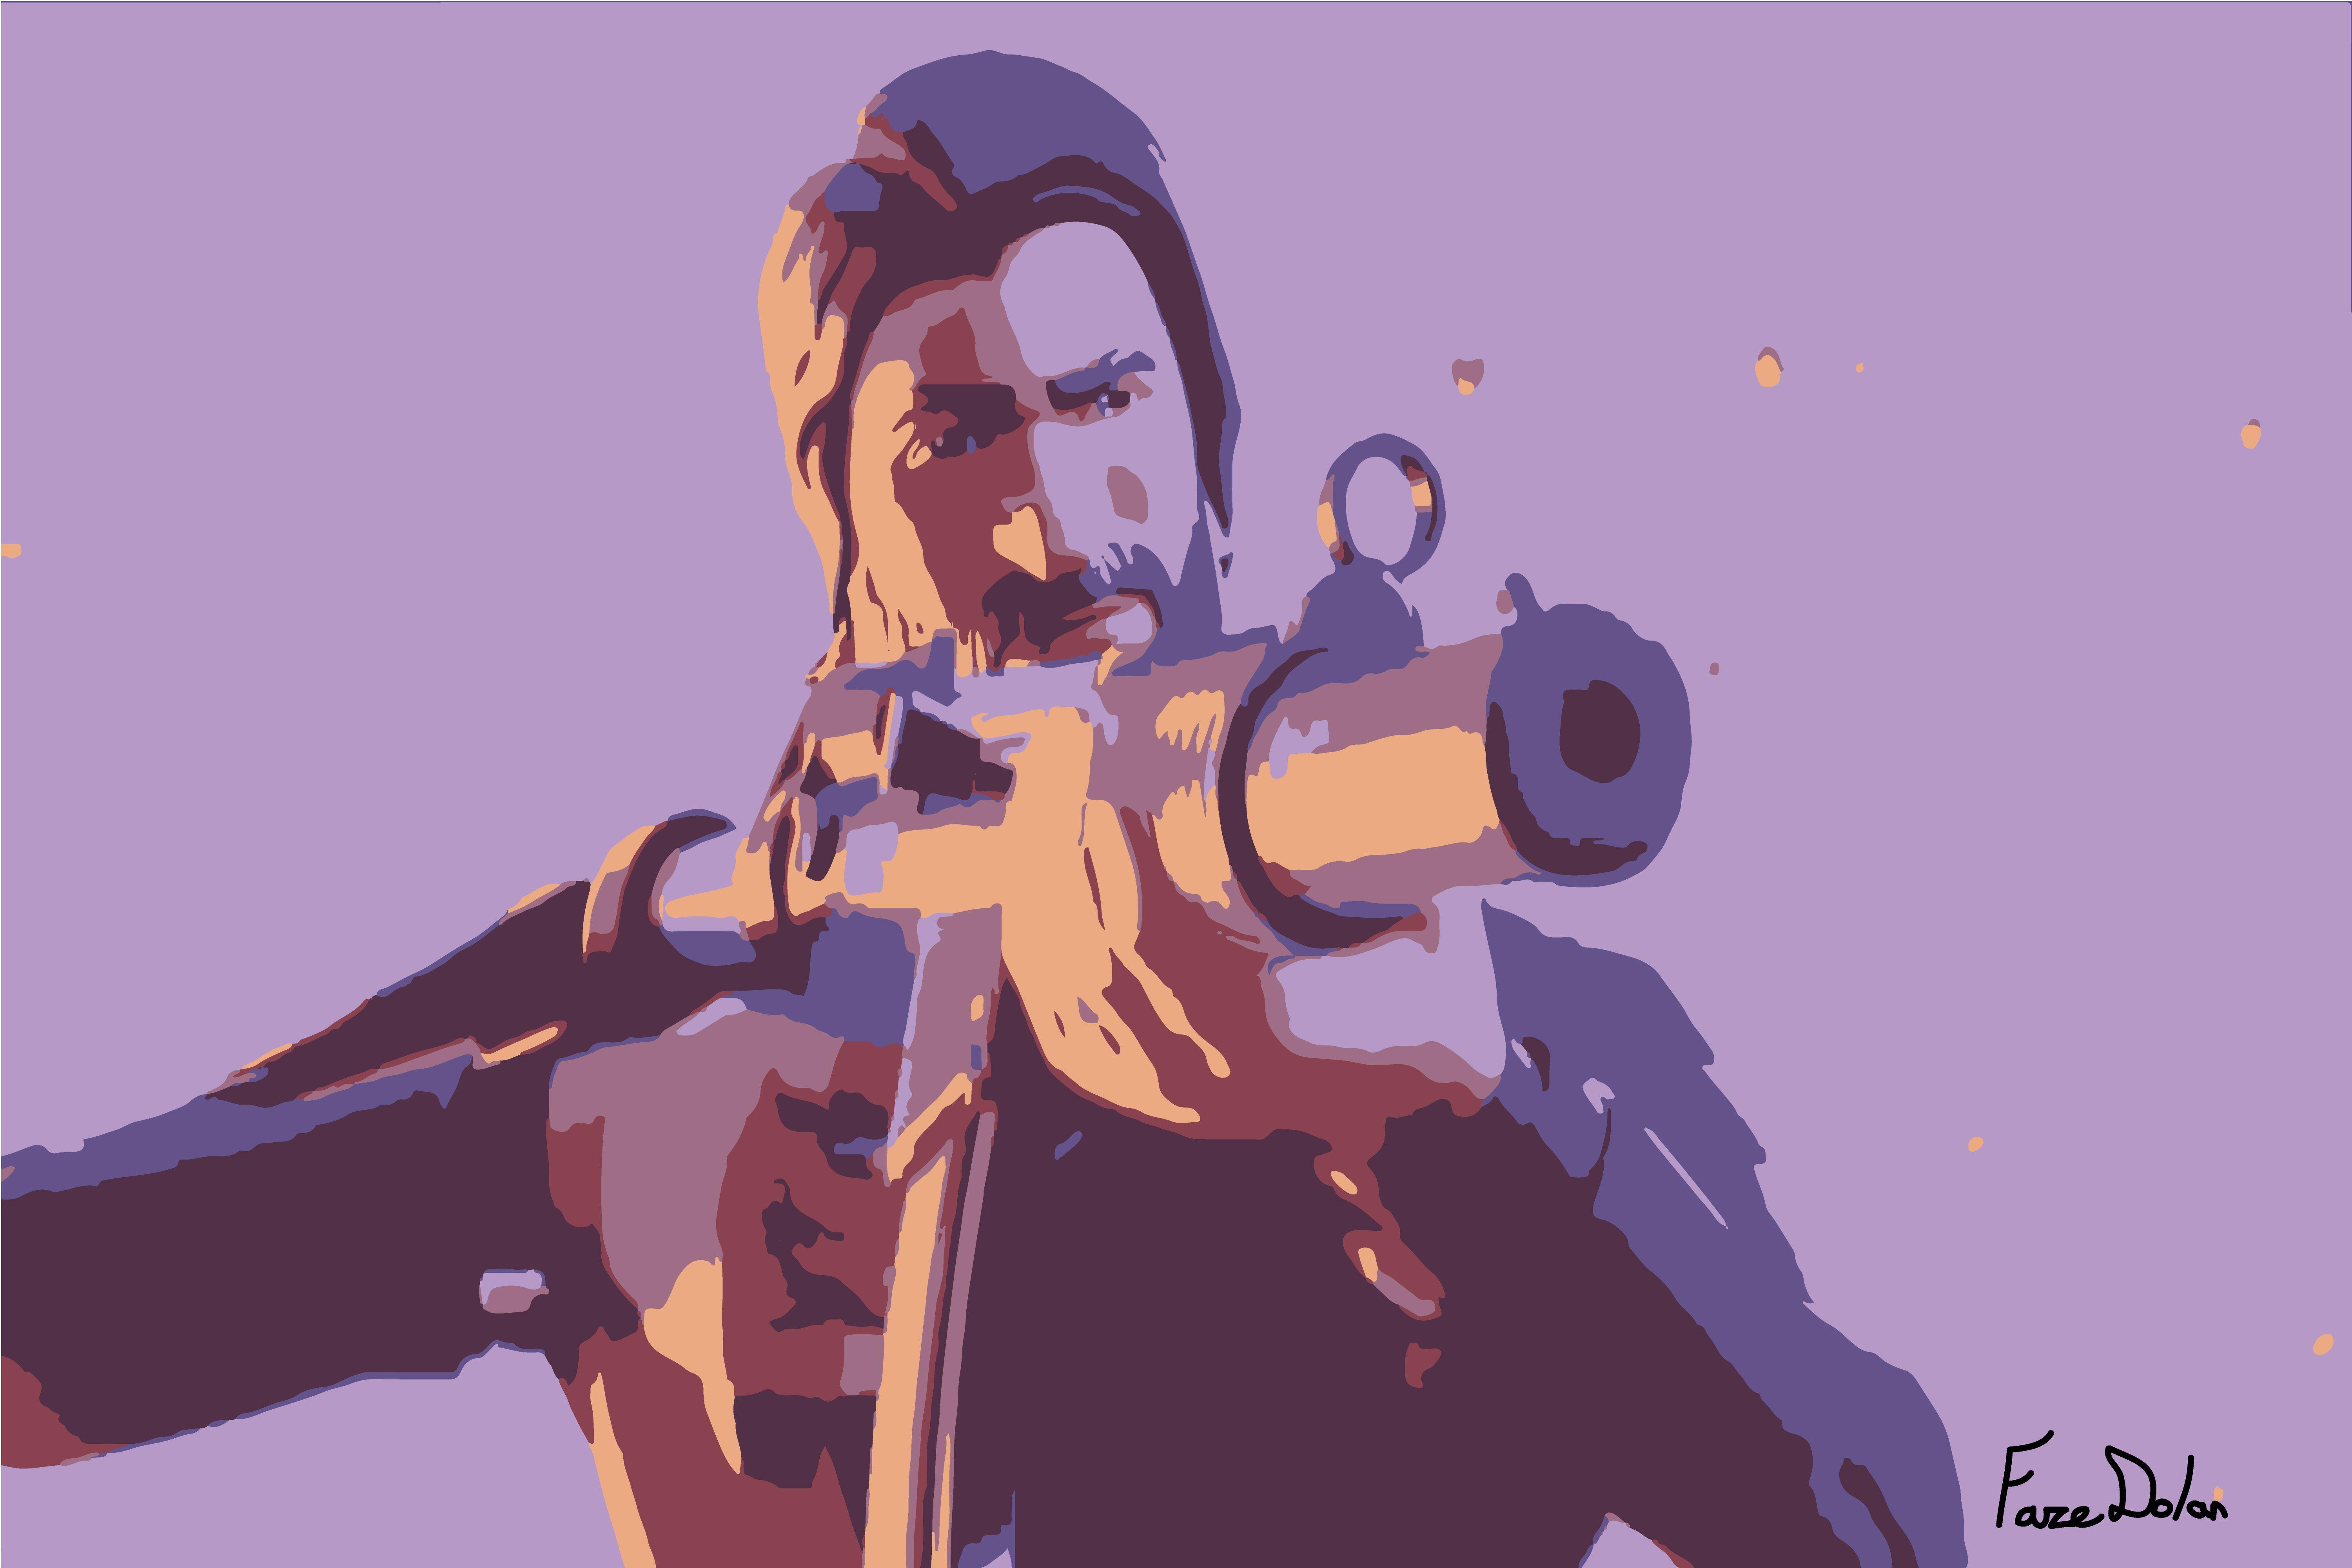 John Wick Fortnite 6K Drawing by Fazedolan Wallpapers and Free